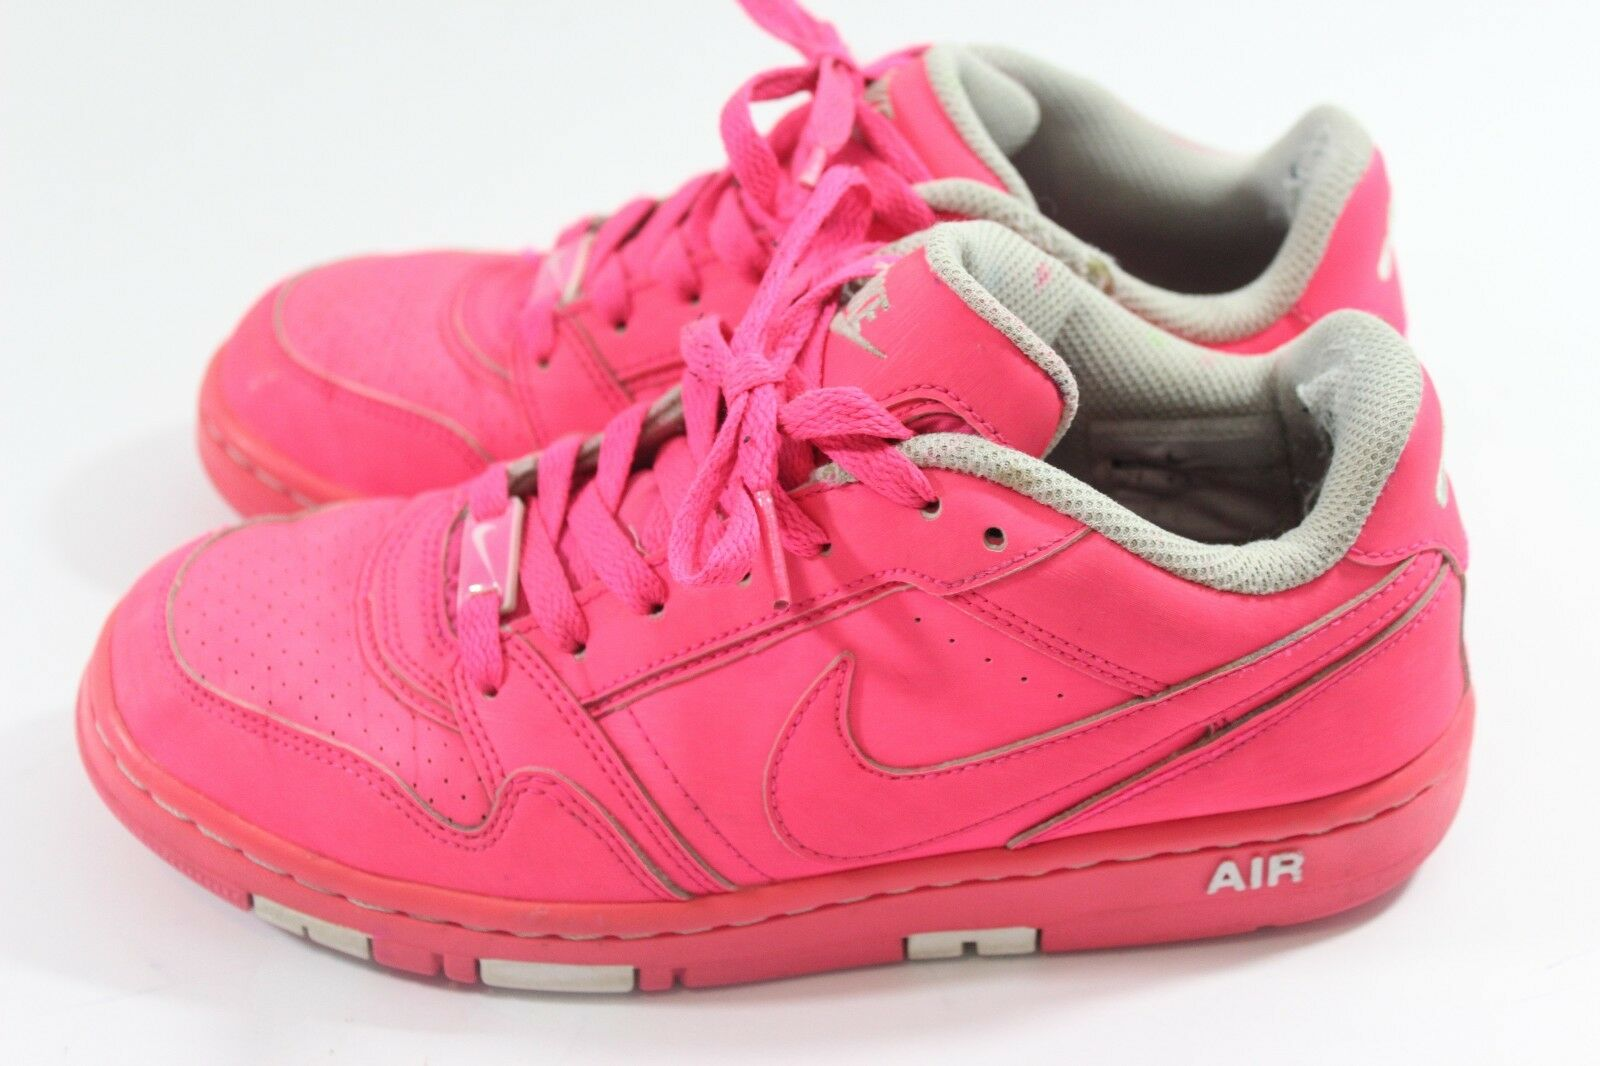 Nike Air Prestige III Hot Pink 2011 Women's Comfortable Cheap and beautiful fashion